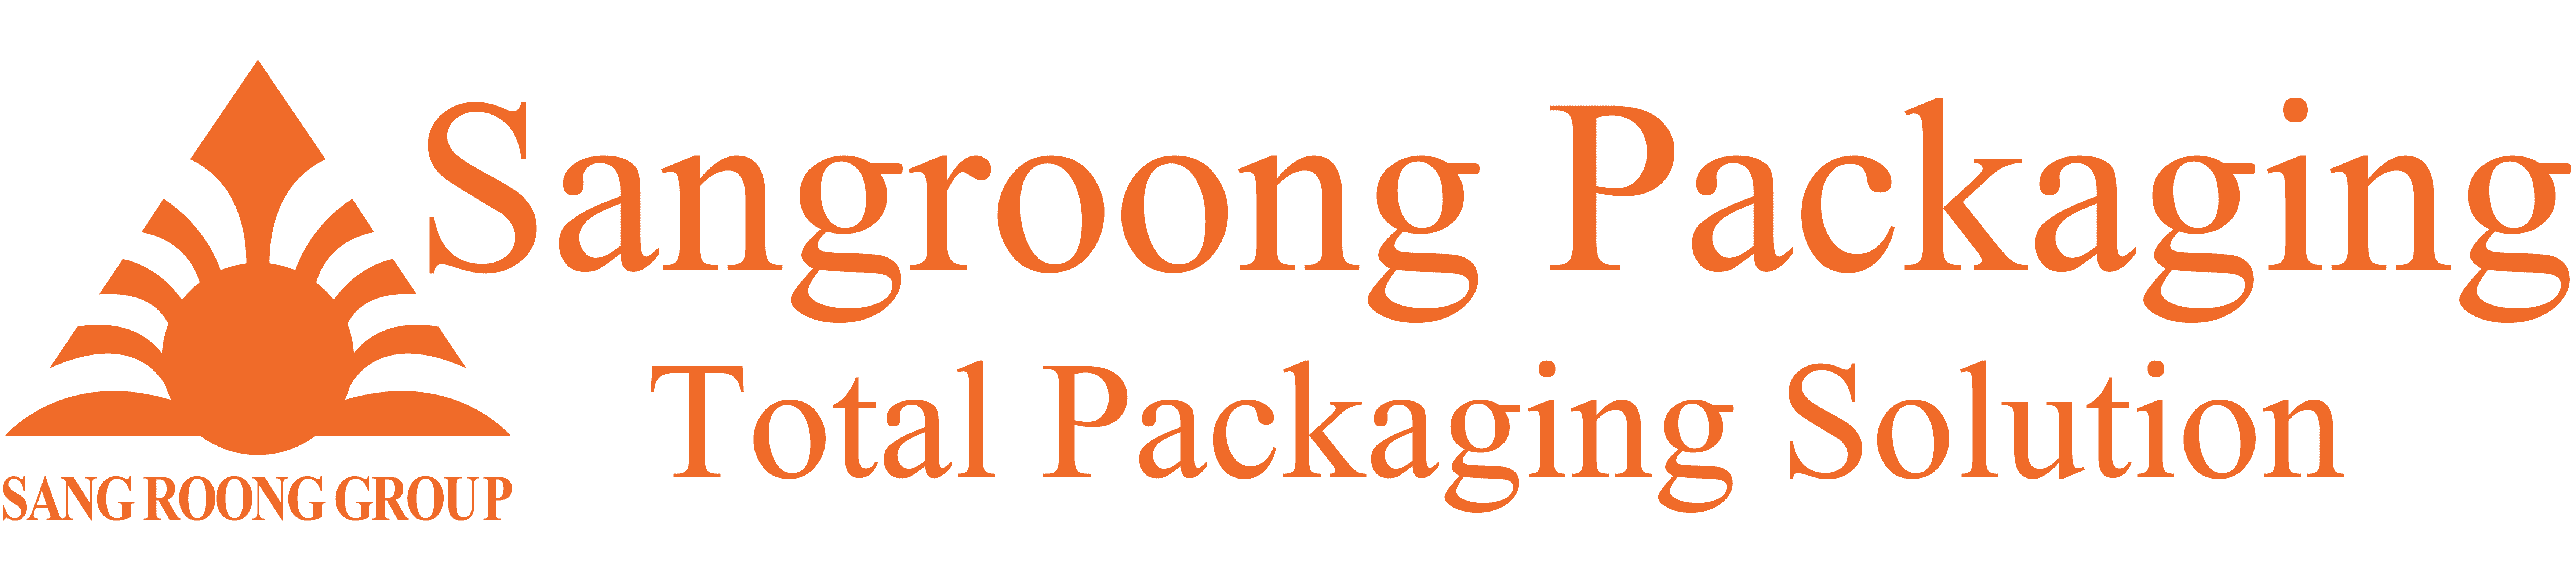 SANGROONG PACKAGING